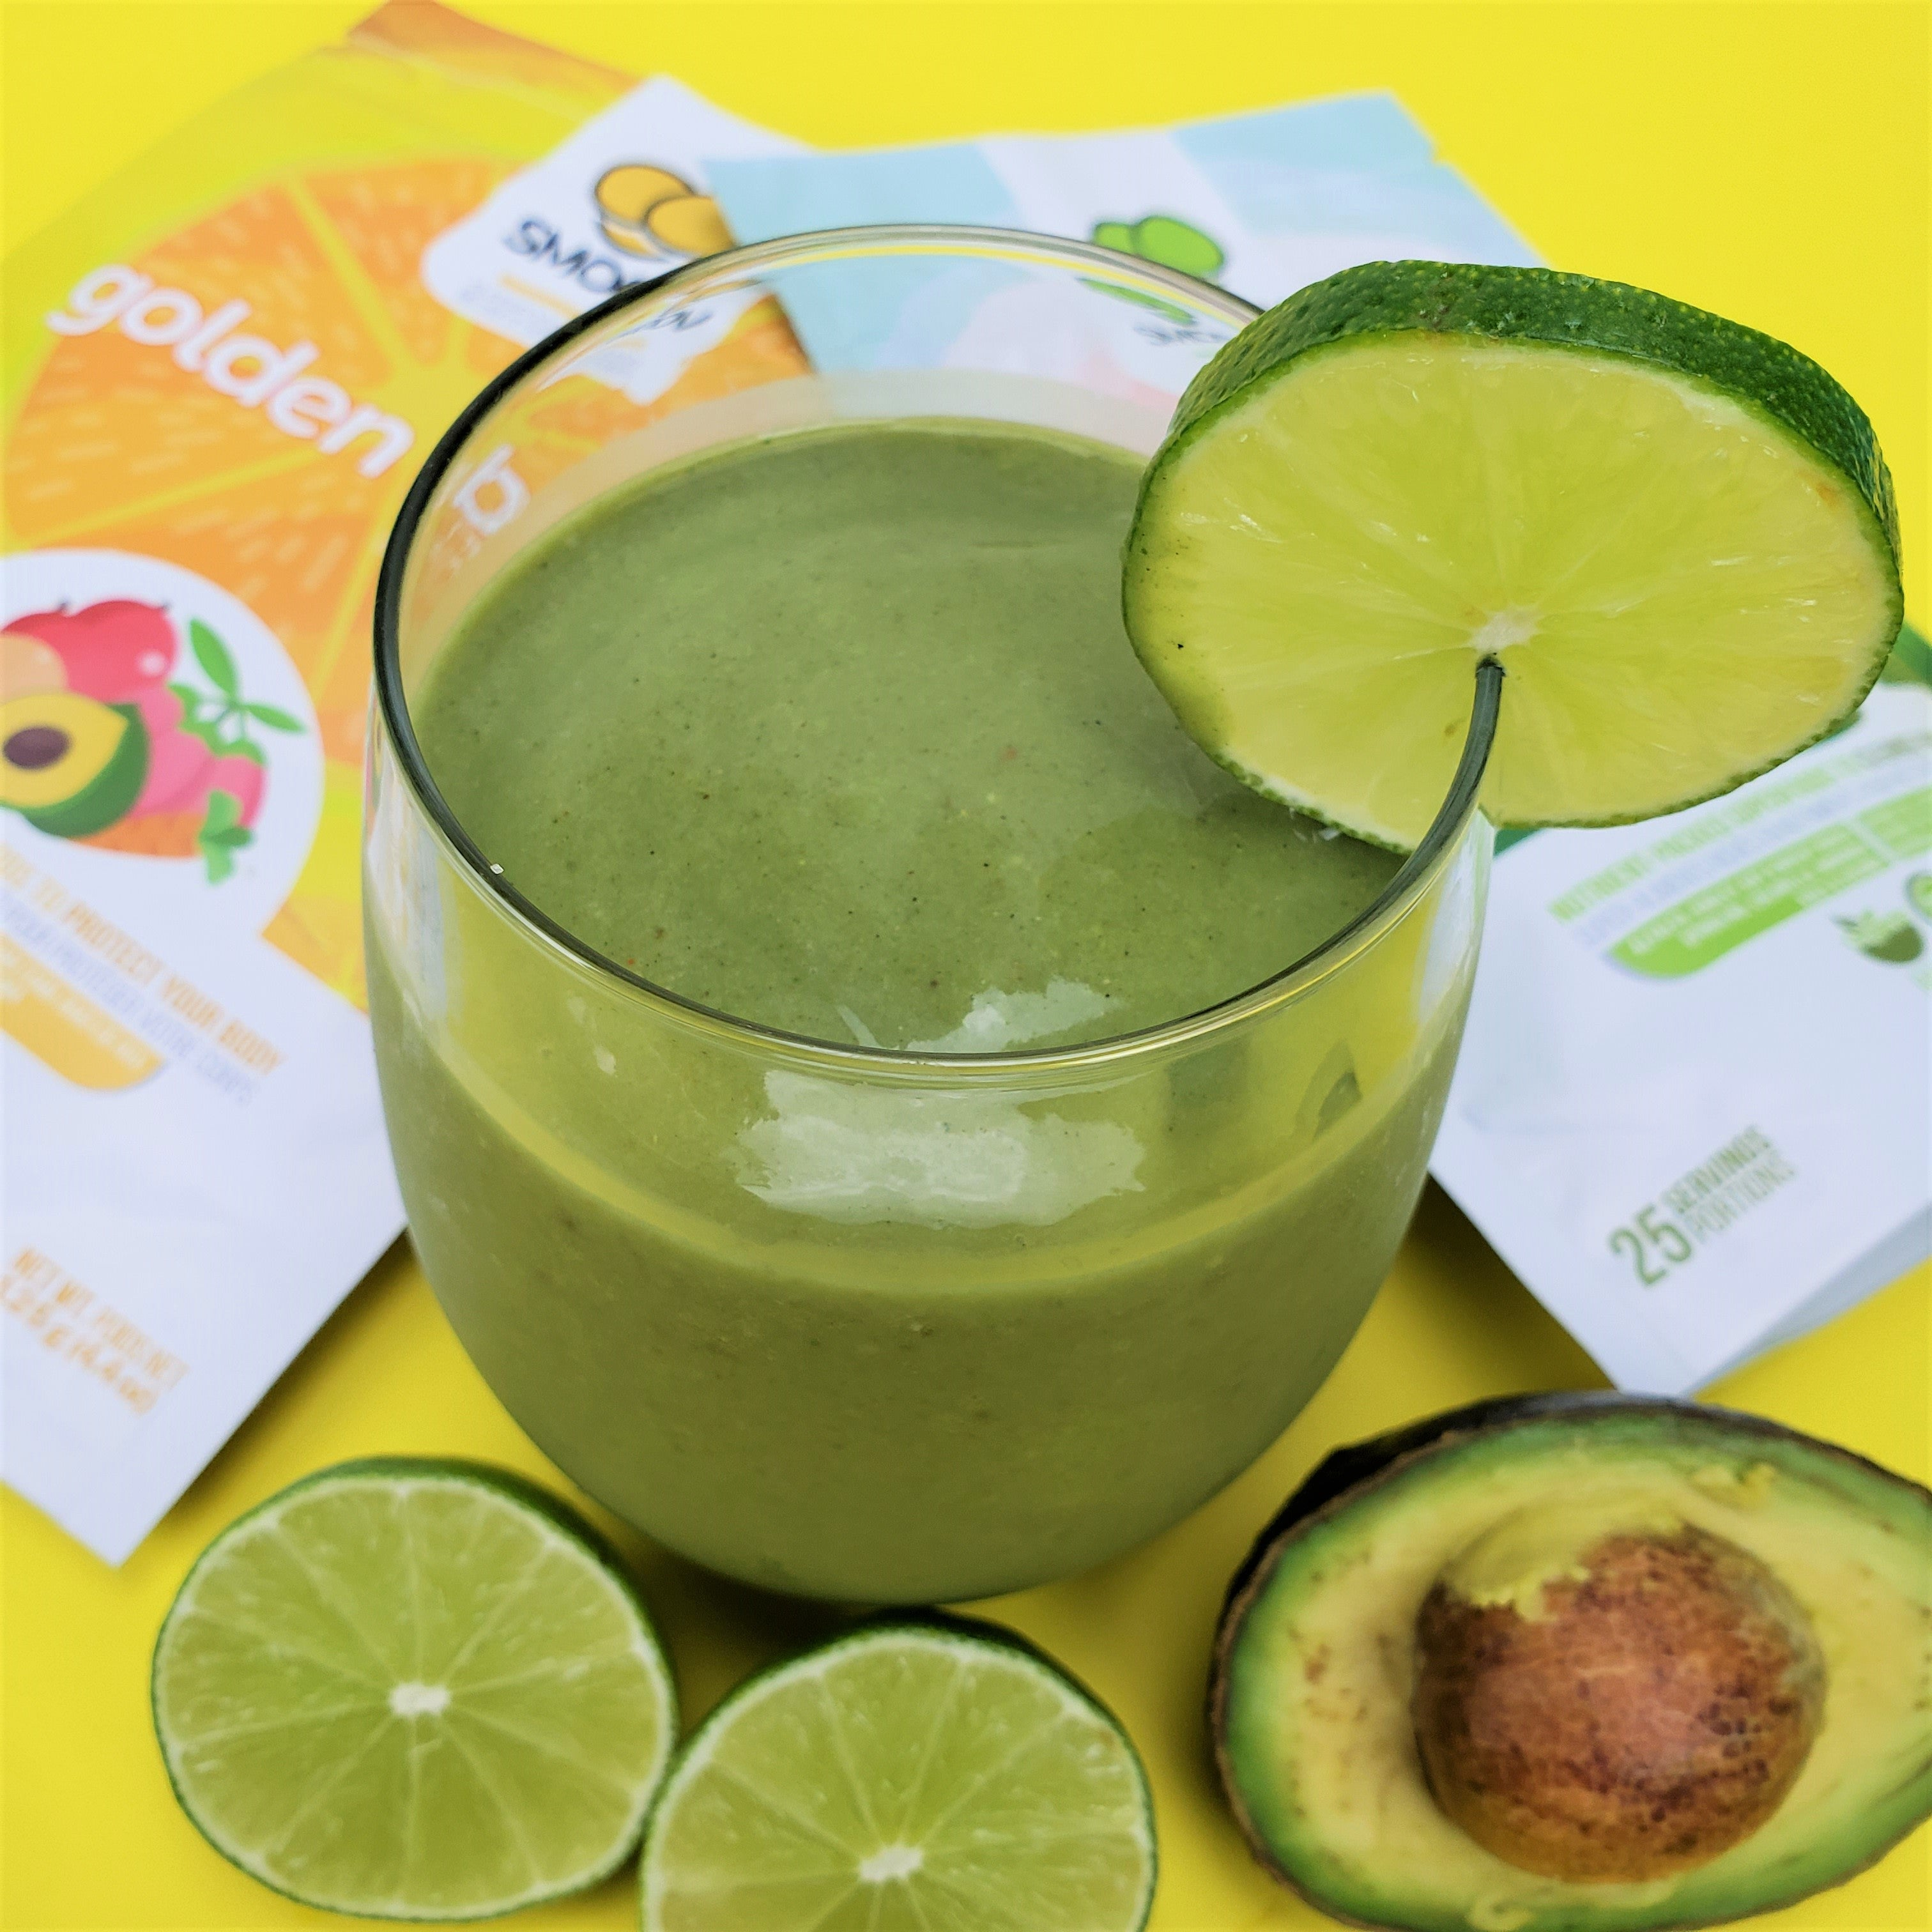 Kickstart your health and boost your immune system with this delicious green smoothie!  Delicious, super easy to make and packed with vitamins.